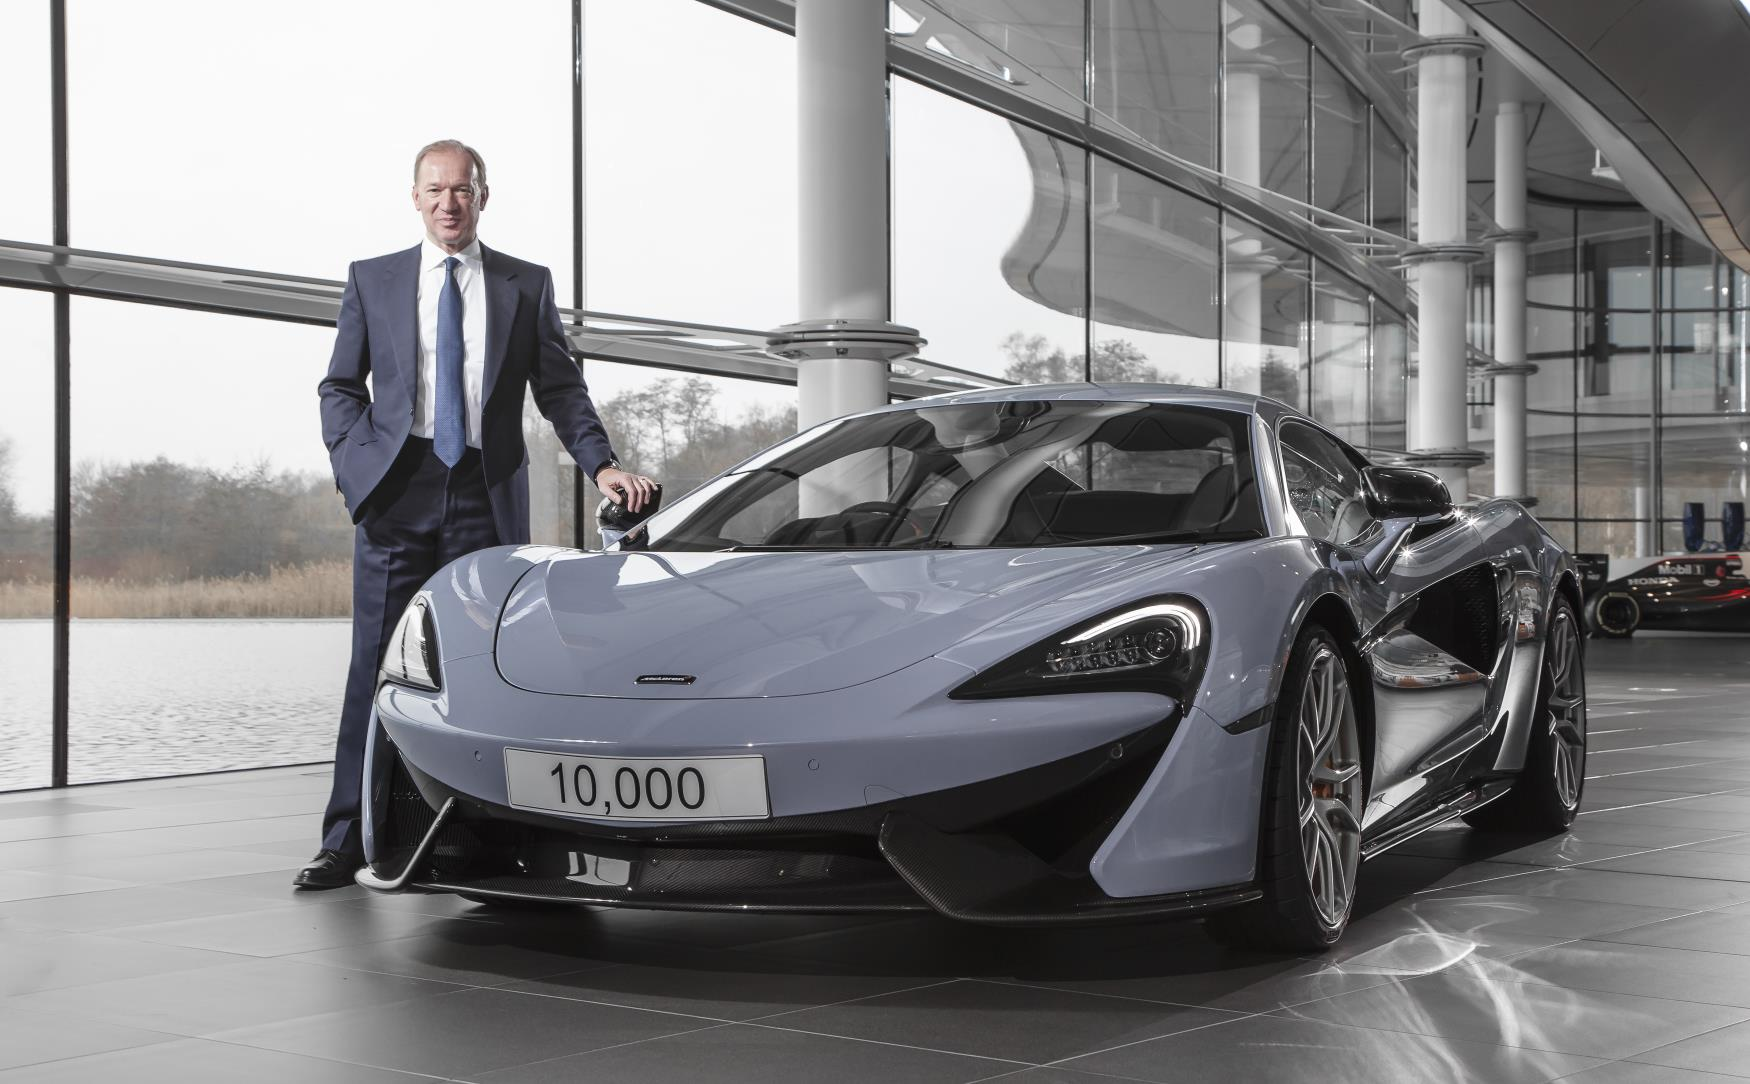 McLaren Automotive Sales Almost Double Over Previous Year